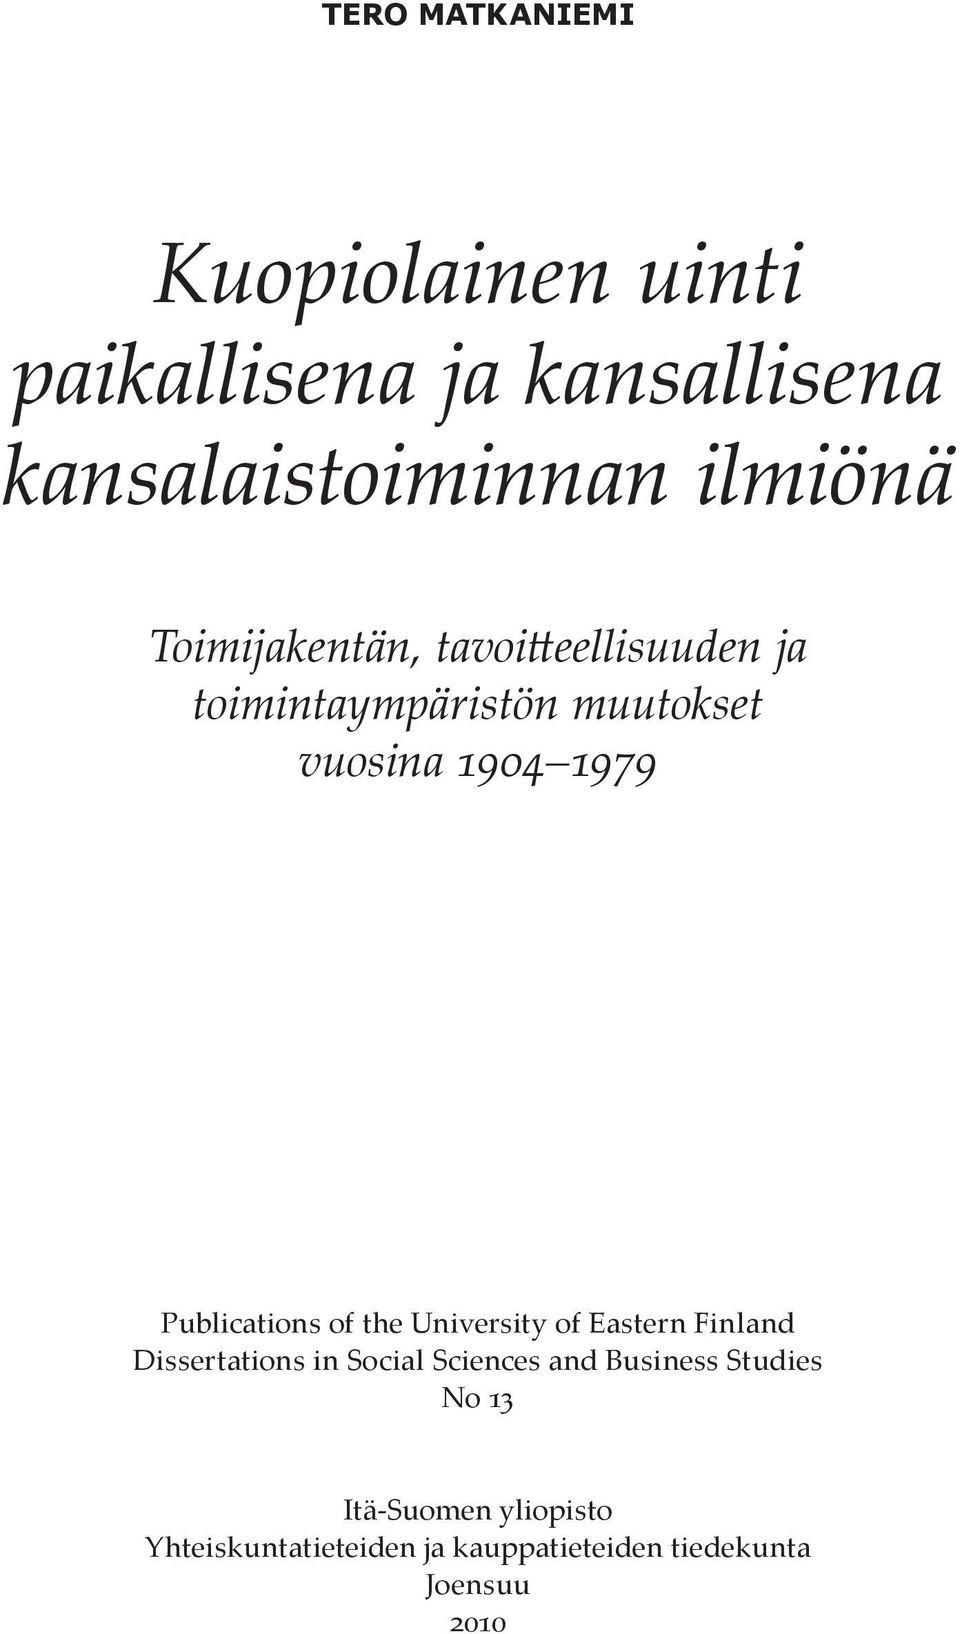 Publications of the University of Eastern Finland Dissertations in Social Sciences and